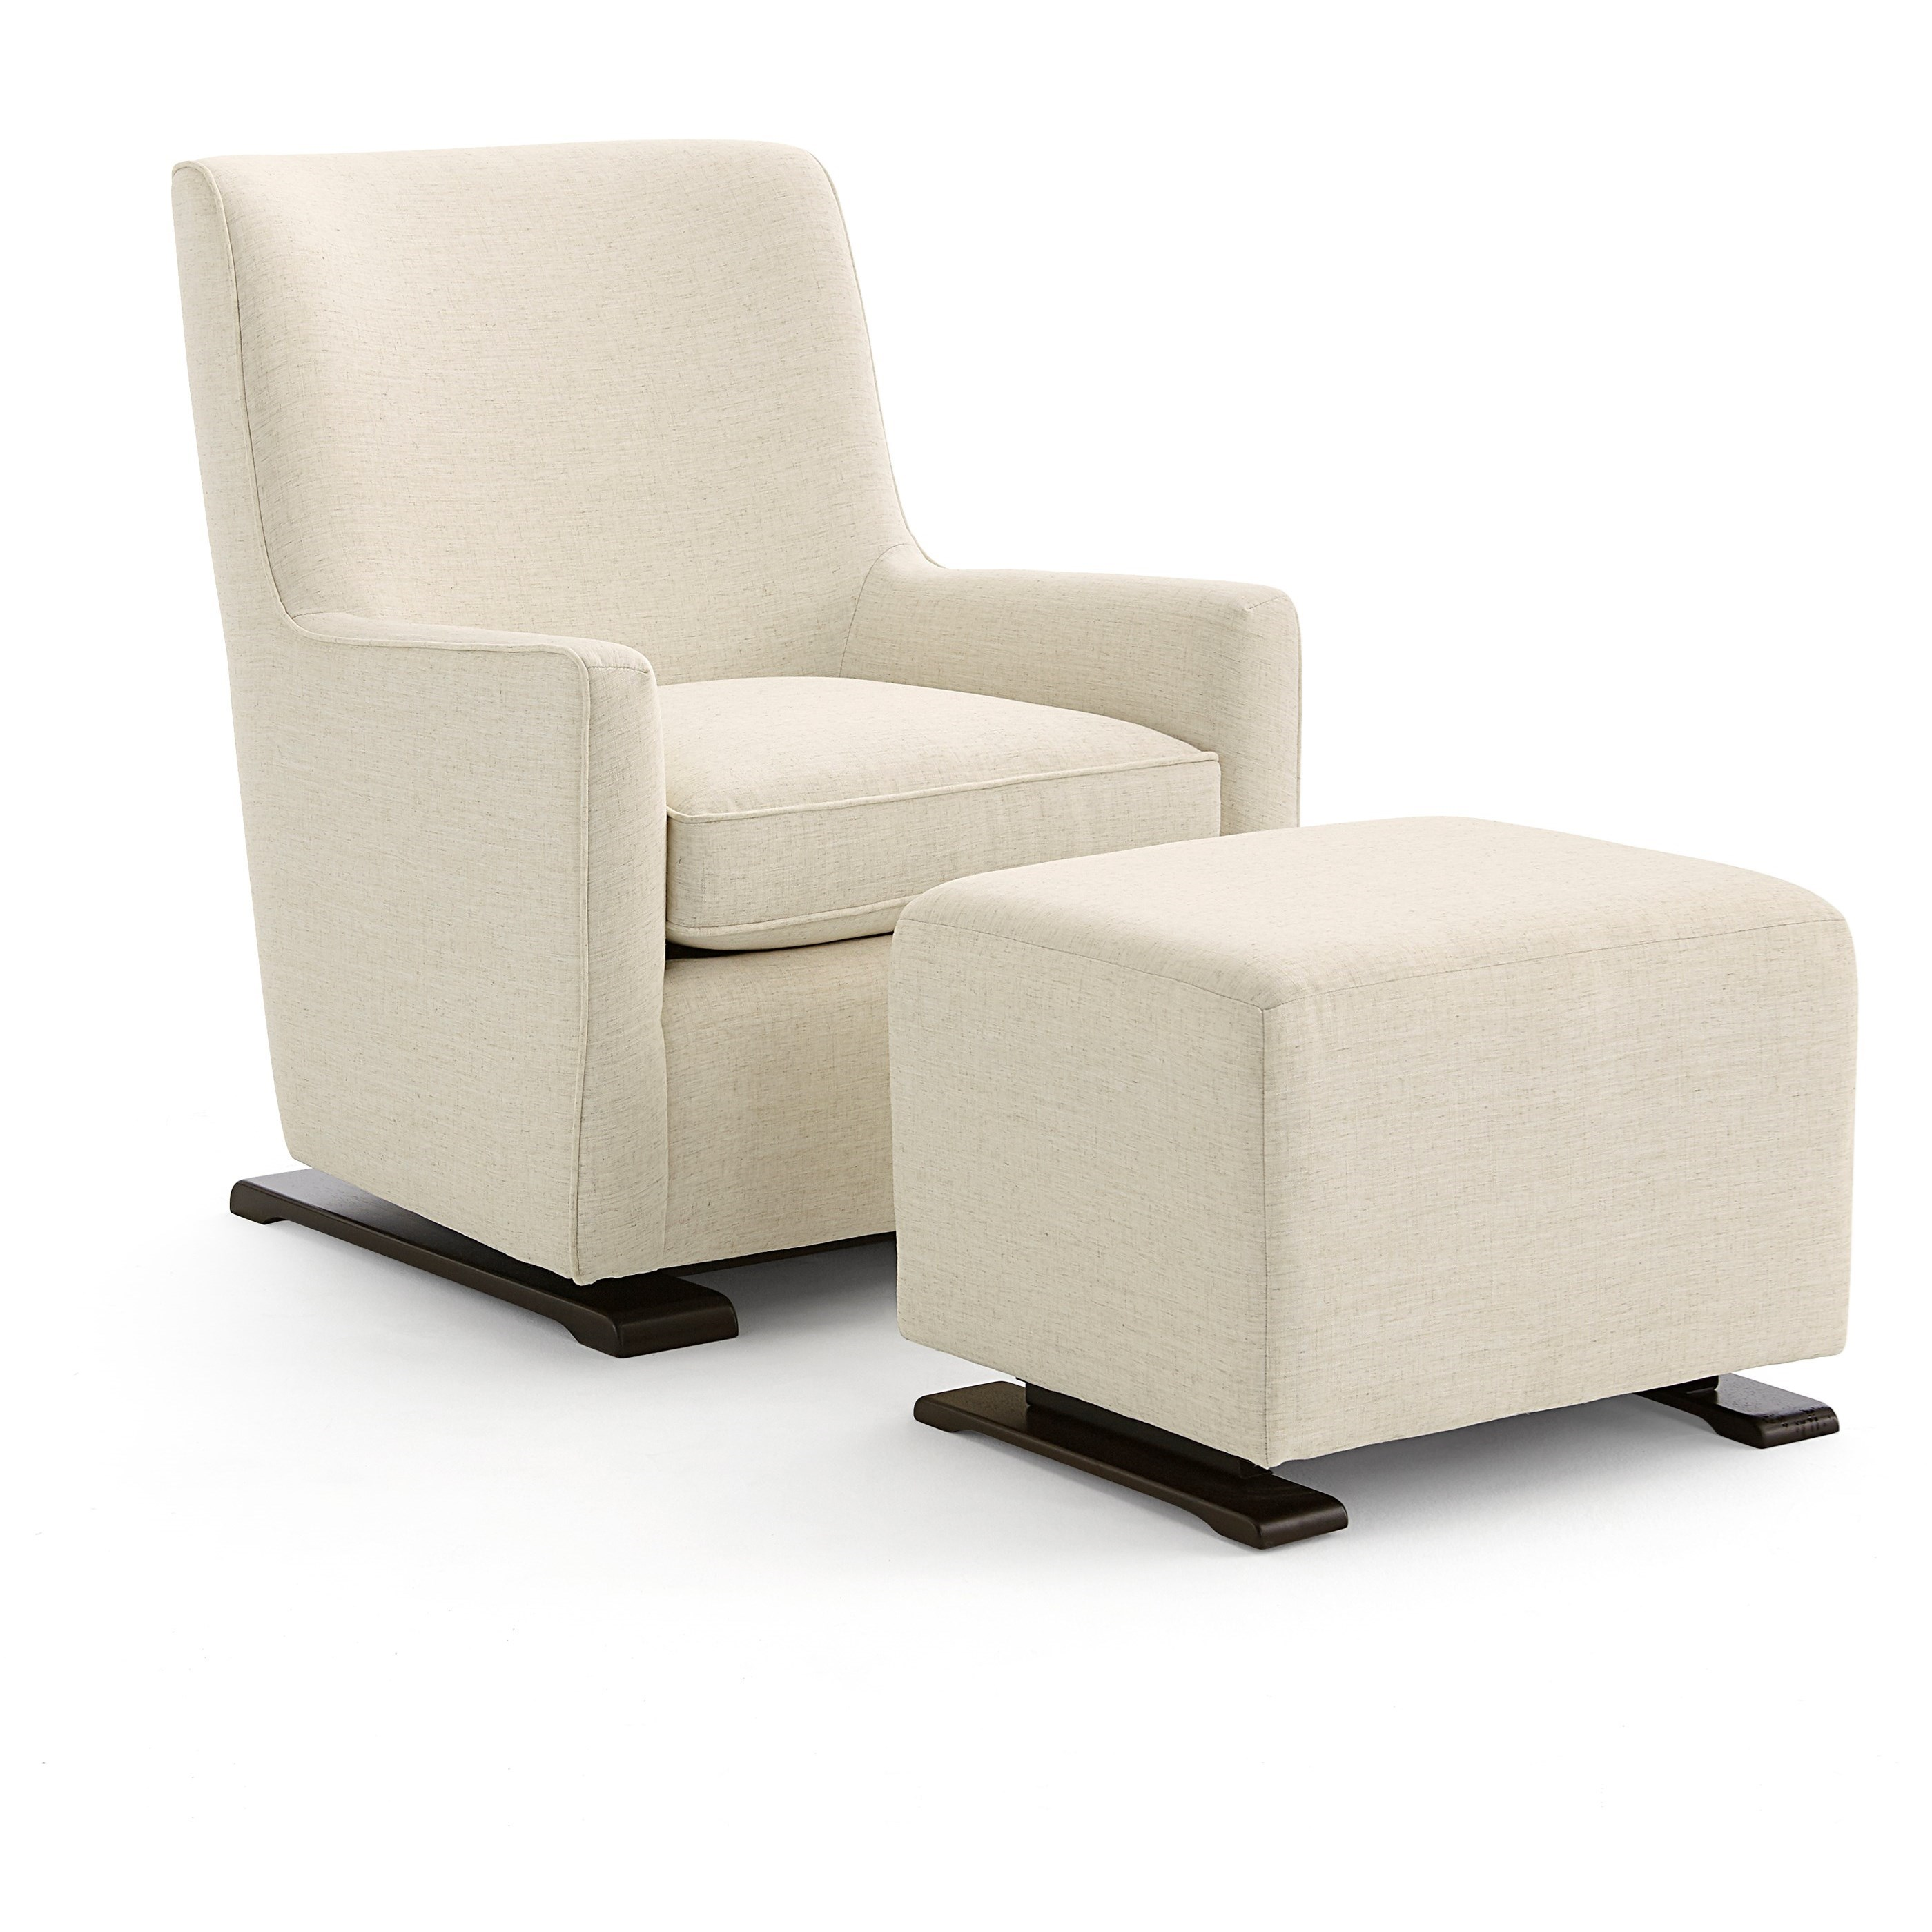 Best Swivel Chair Best Home Furnishings Coral 2237 Contemporary Swivel